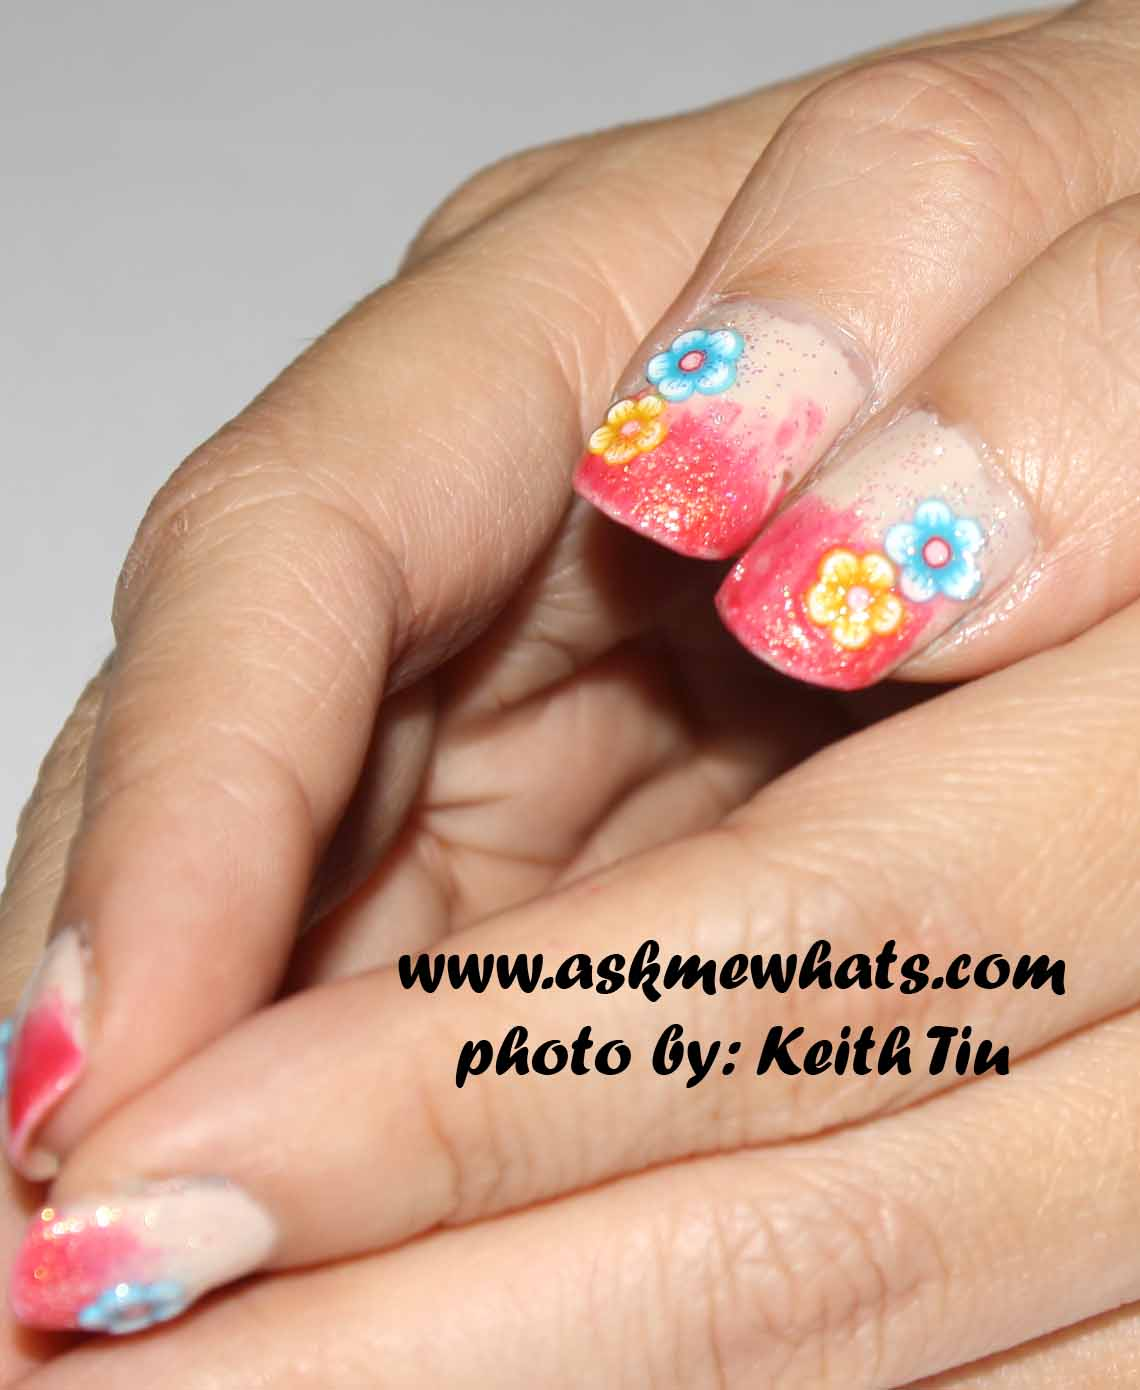 Askmewhats top beauty blogger philippines skincare makeup since i was in a bit of hurry to create this nail art ive decided to stick on the flowers instead of drawing them i hope you like it prinsesfo Gallery